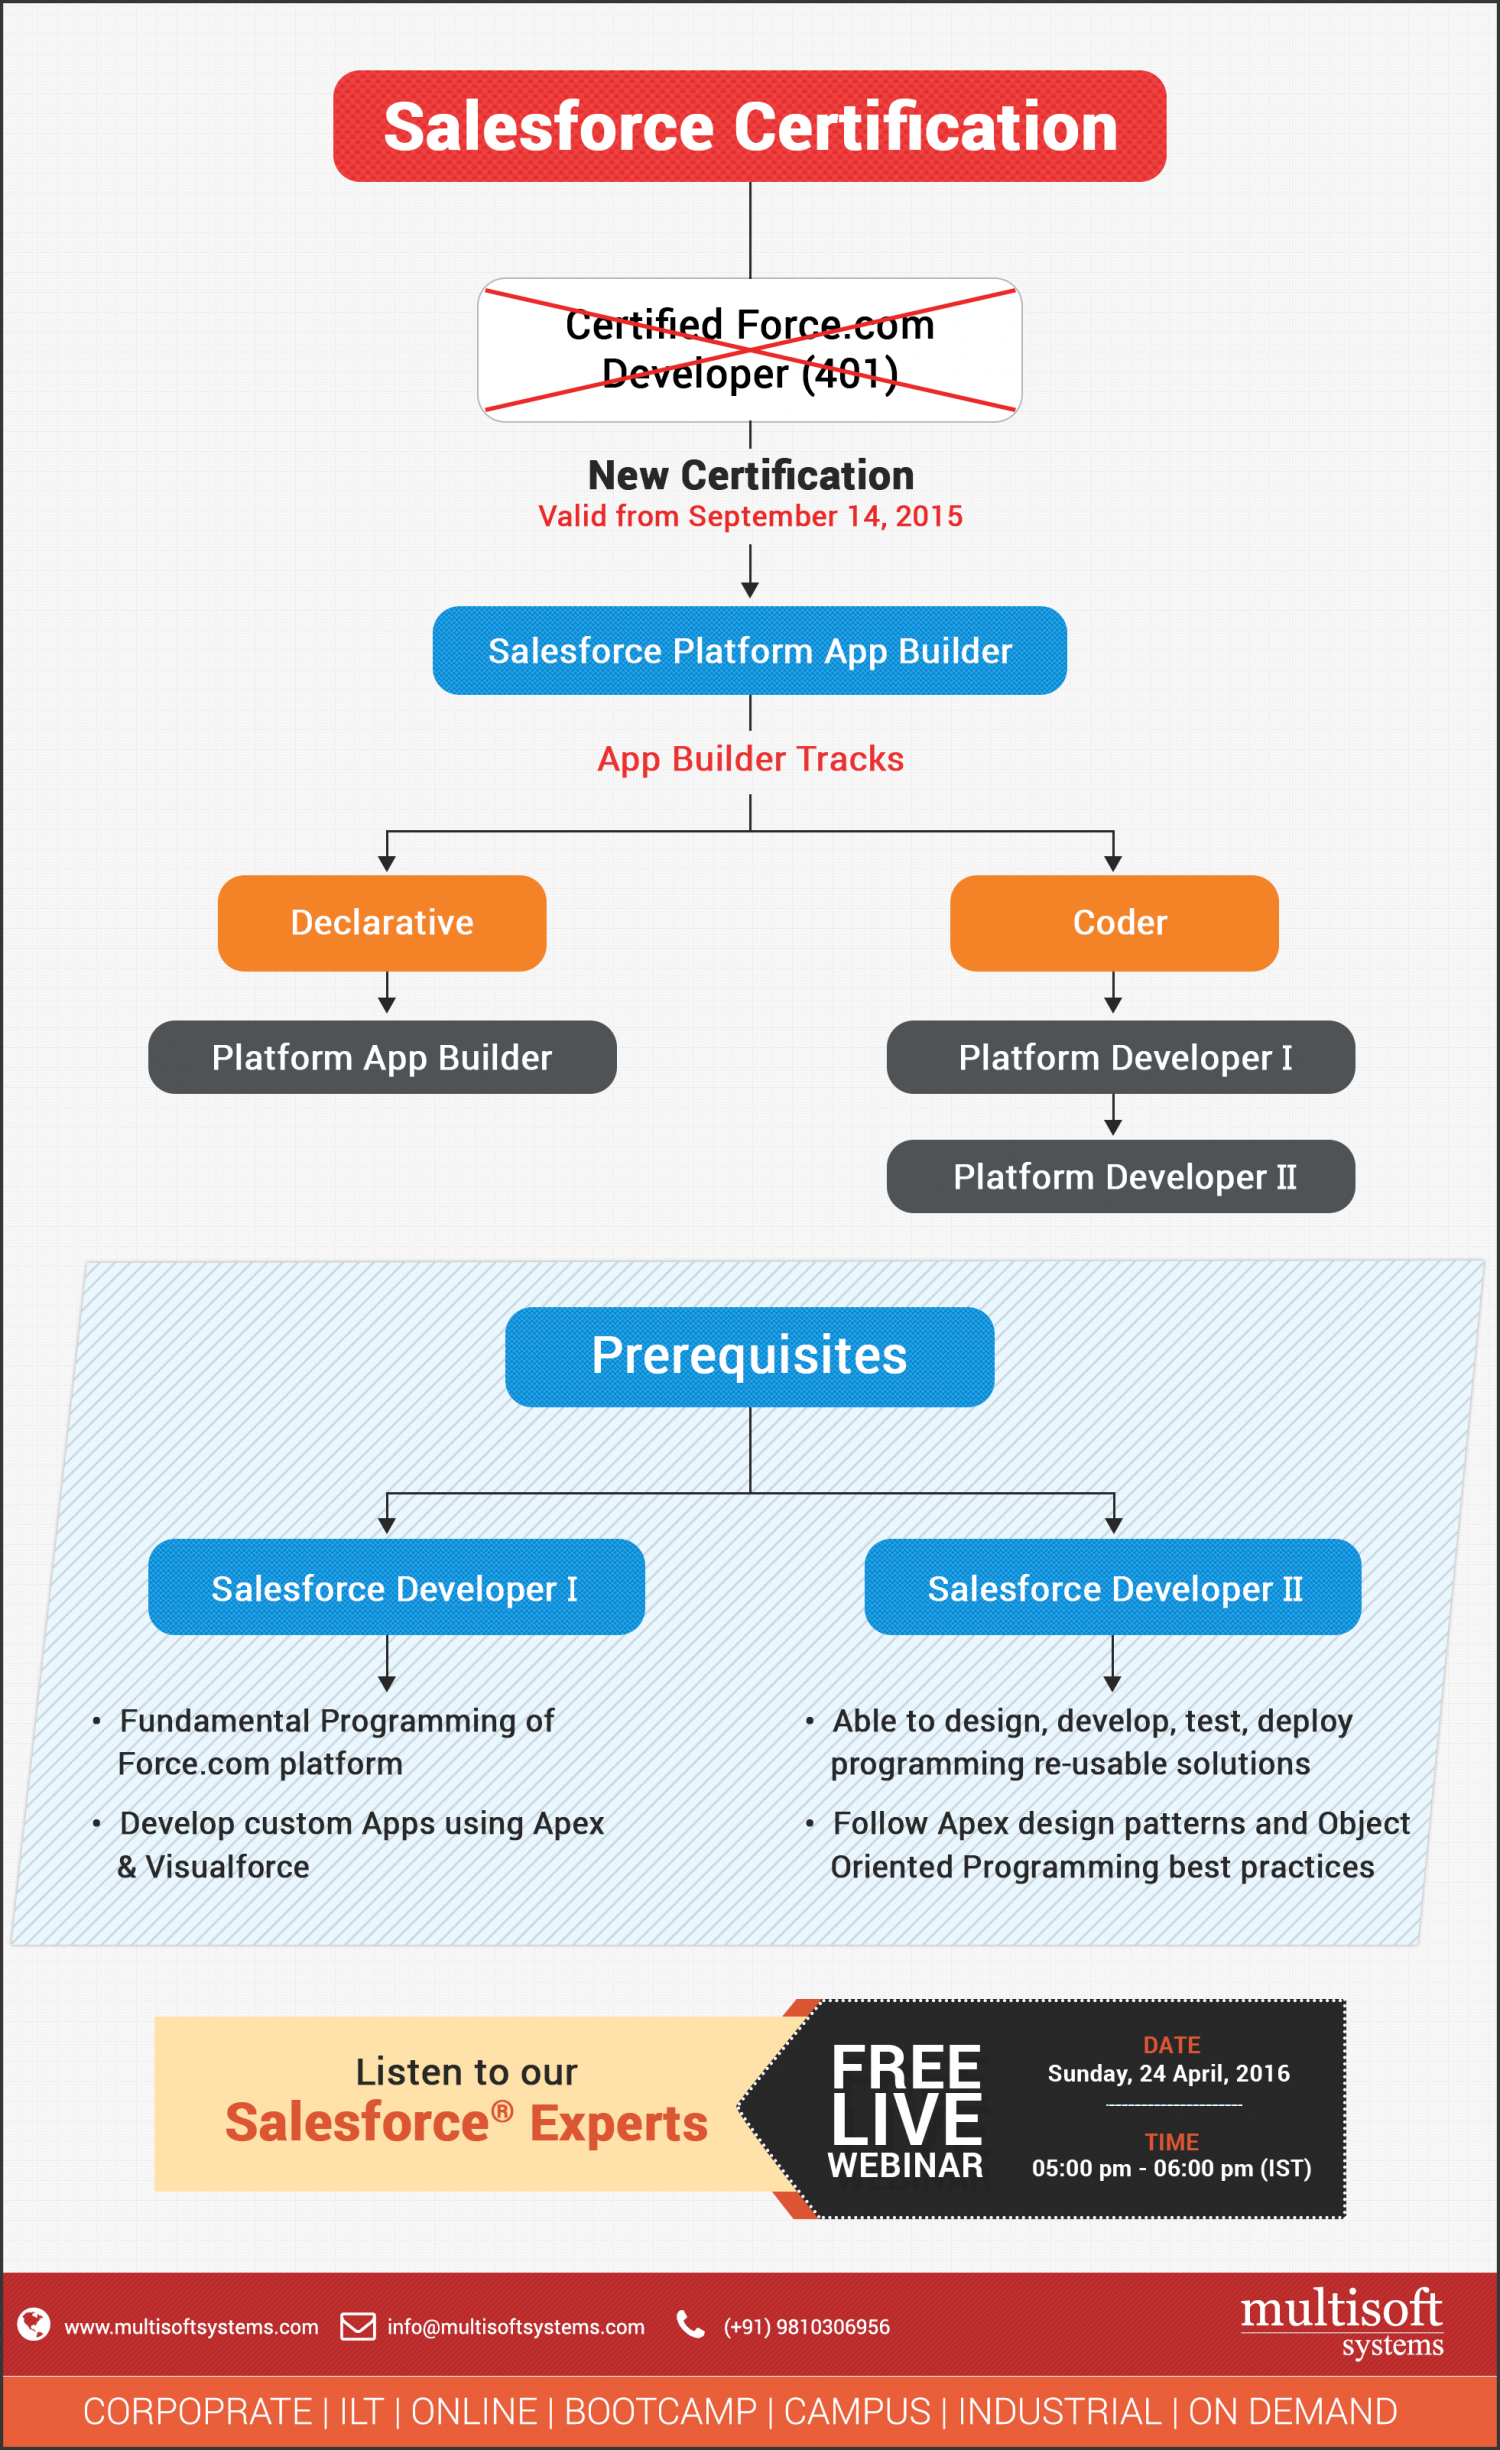 Salesforce certification training multisoft systems visual salesforce certification training multisoft systems infographic 1betcityfo Gallery